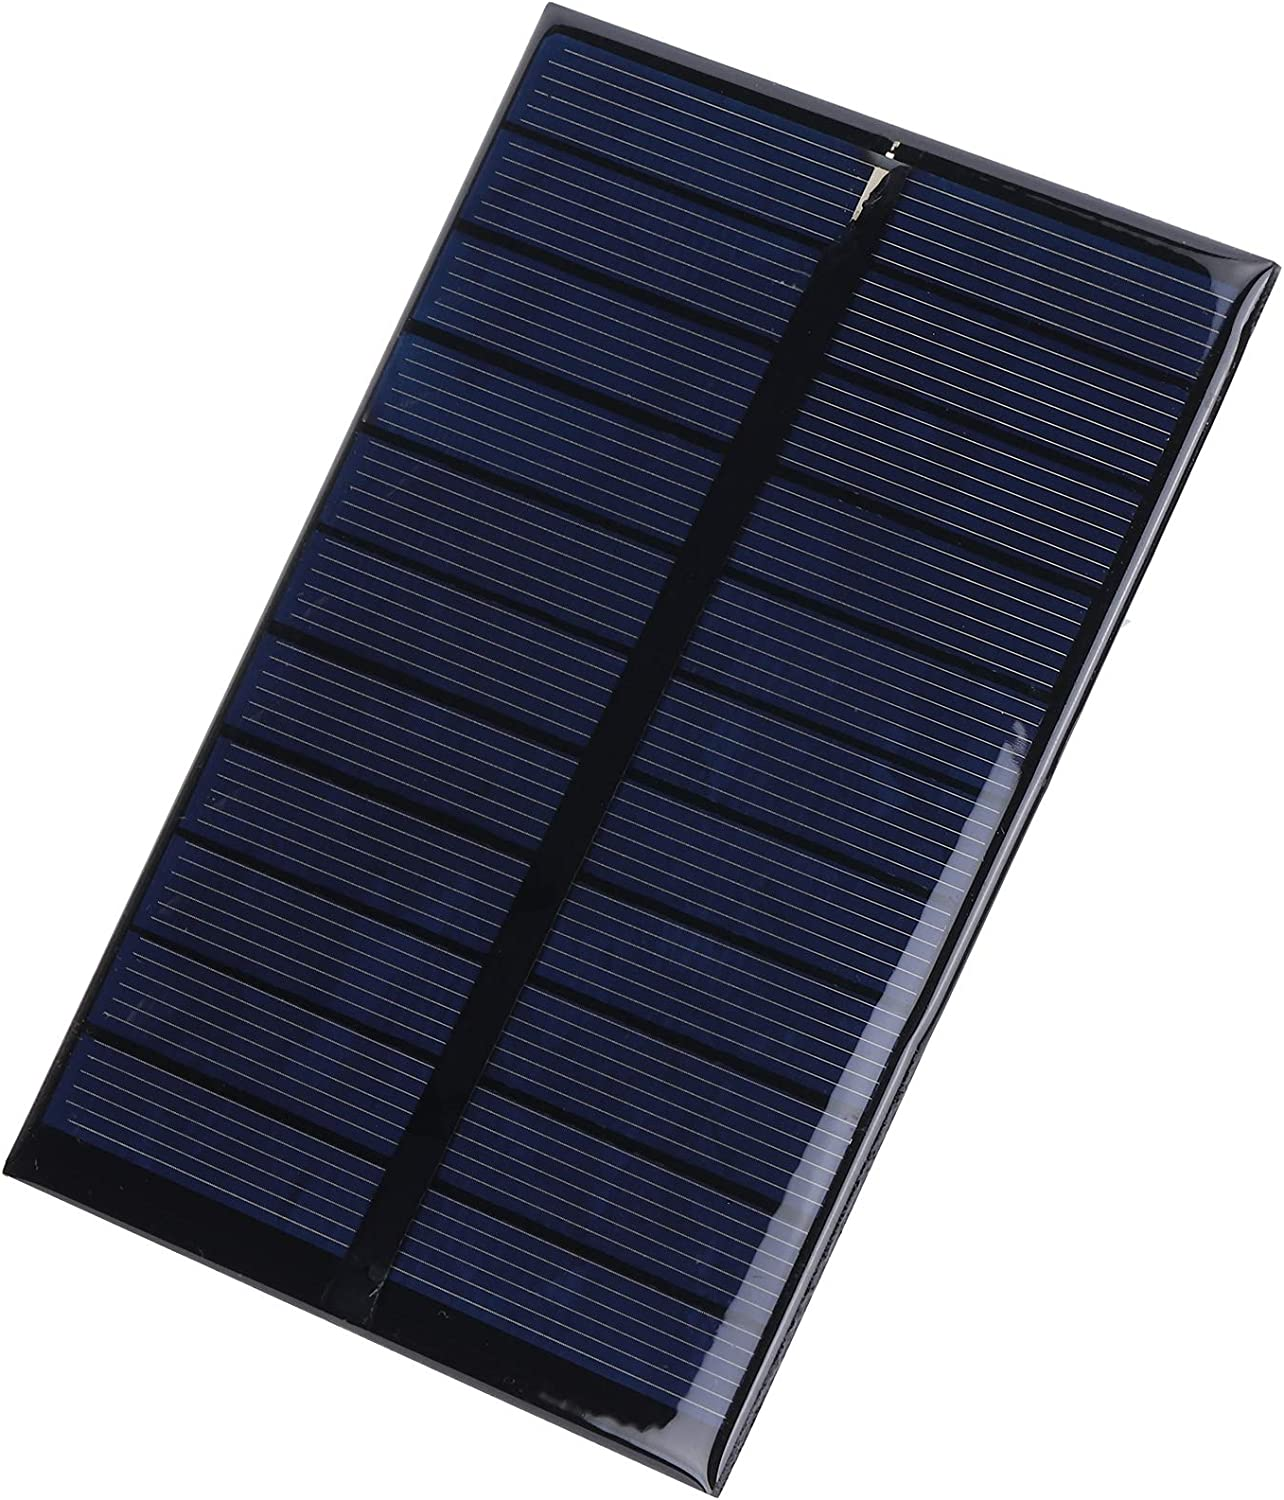 Alinory Mini Max 66% OFF Solar Panel Silicon Power Same day shipping Sol Polycrystalline